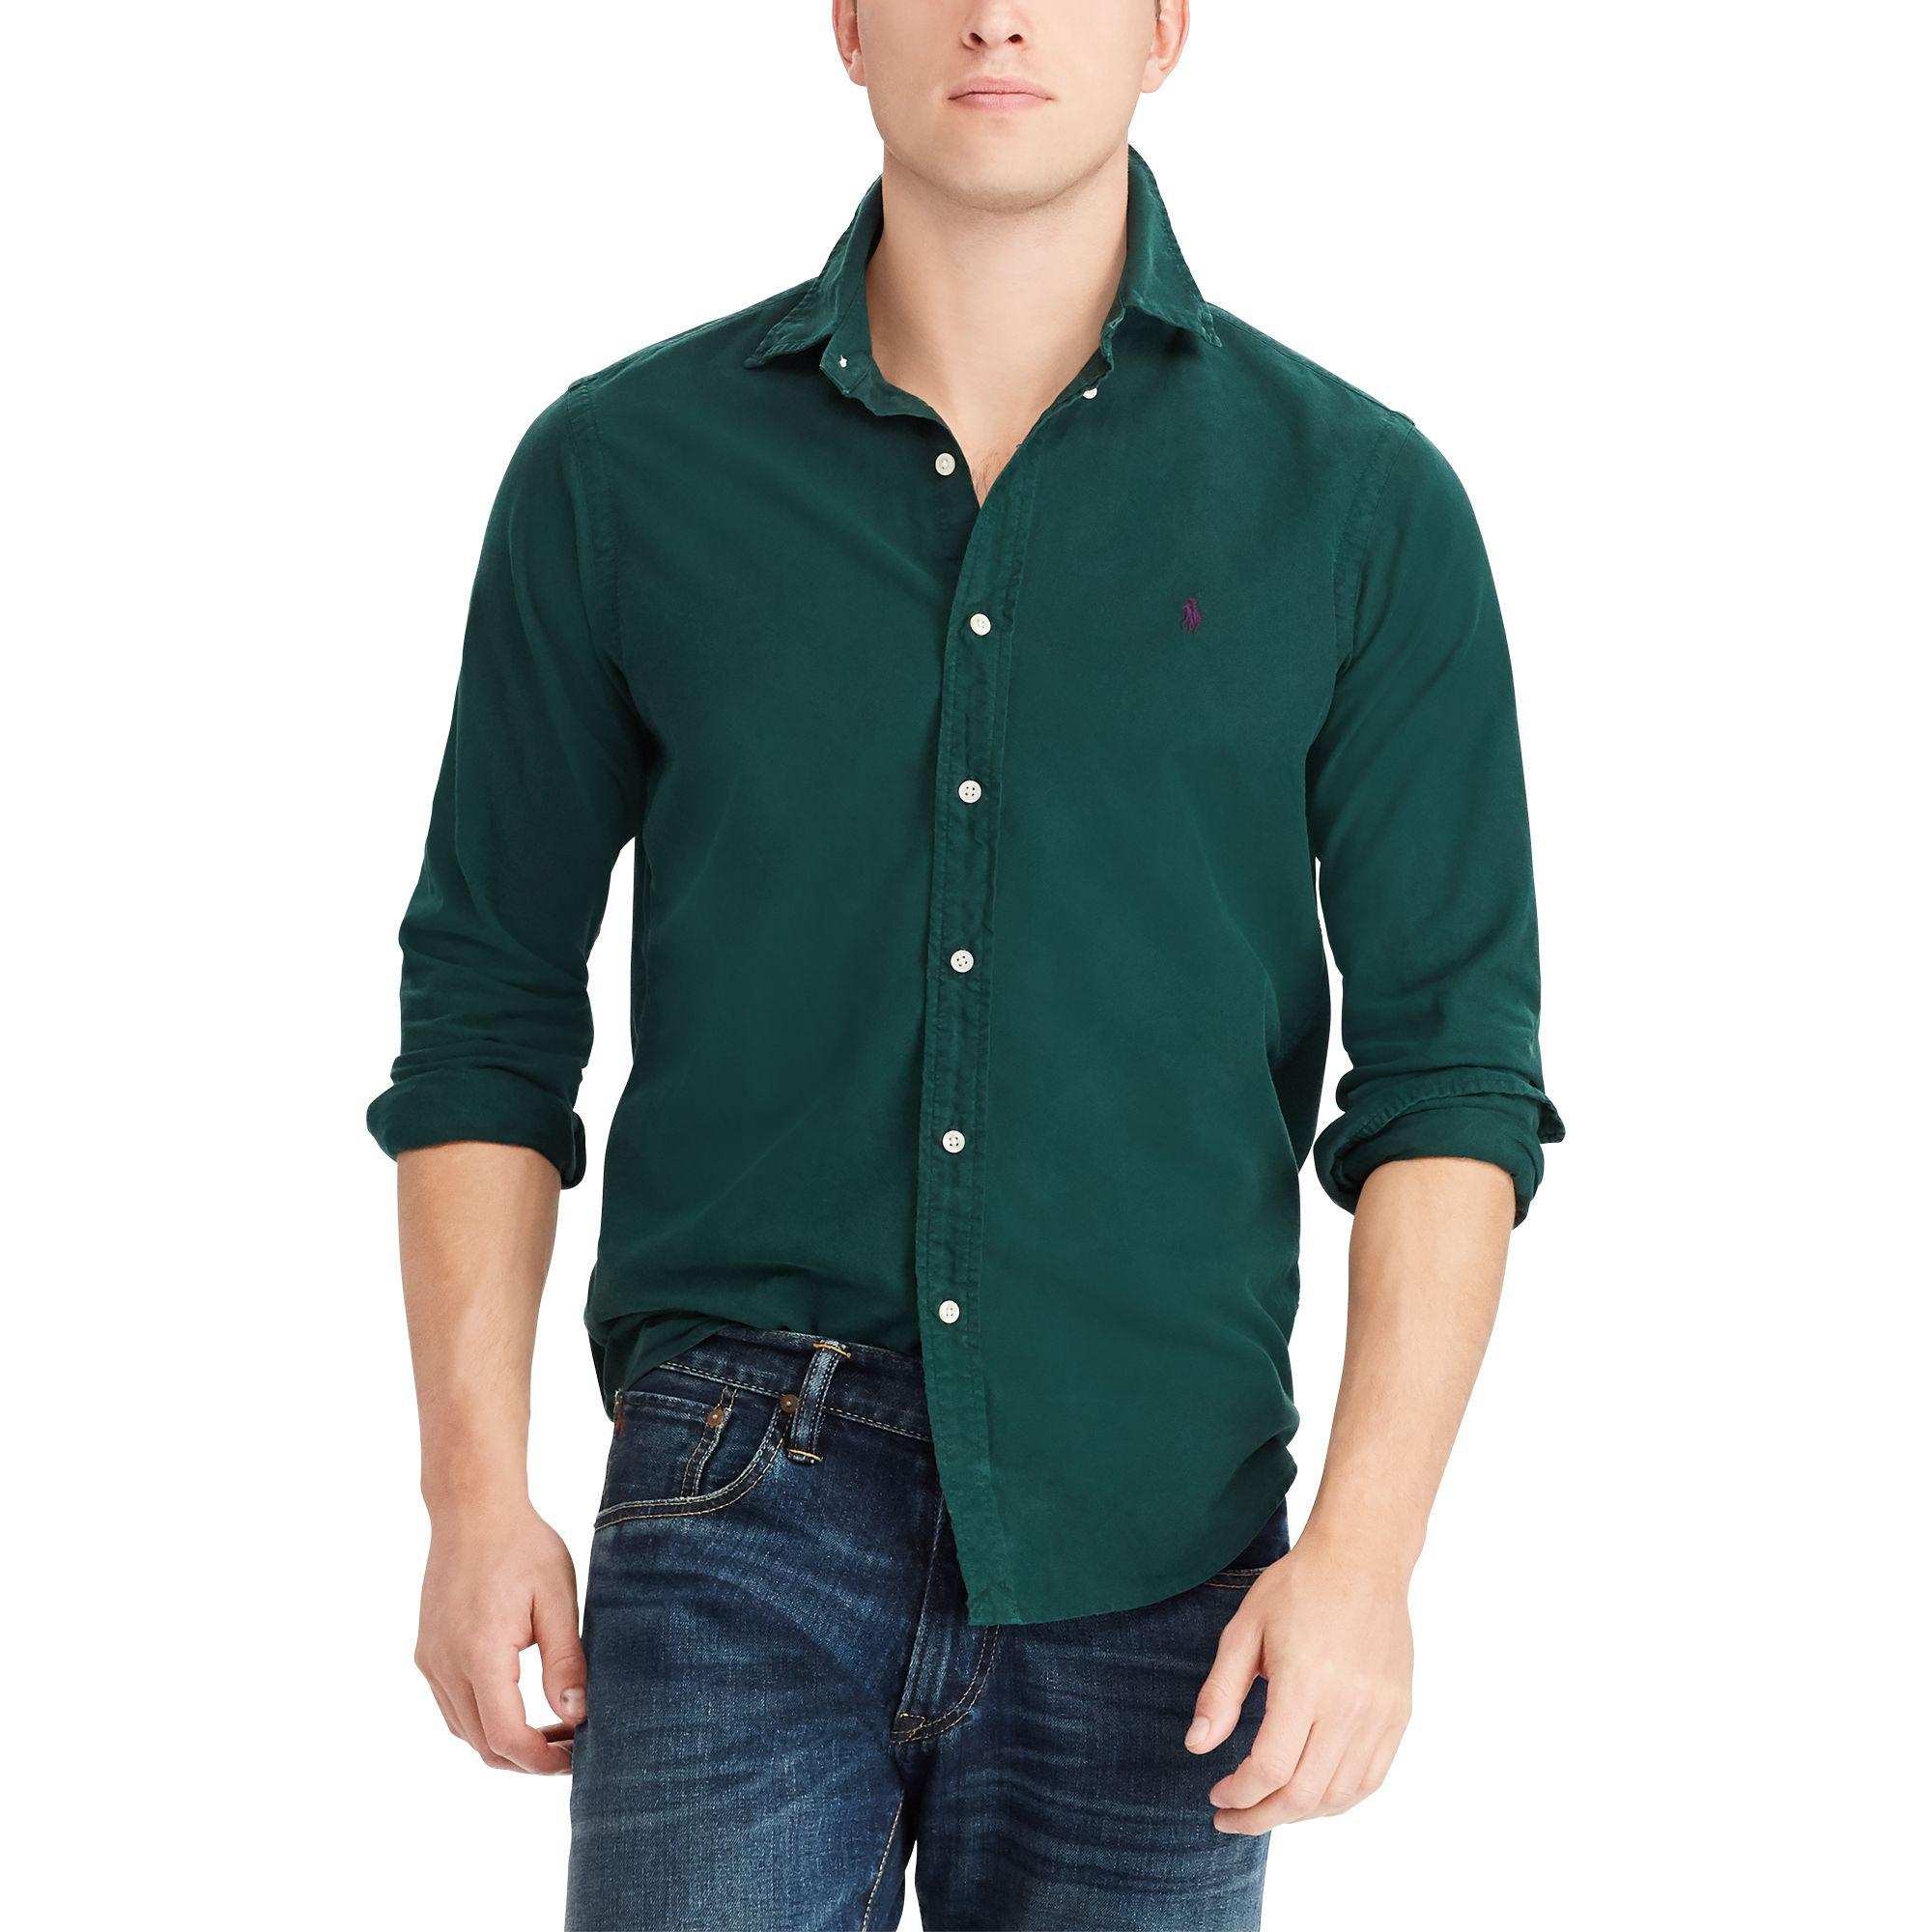 1e3cc07a9 Polo Ralph Lauren Classic Fit Oxford Shirt in Green for Men - Lyst